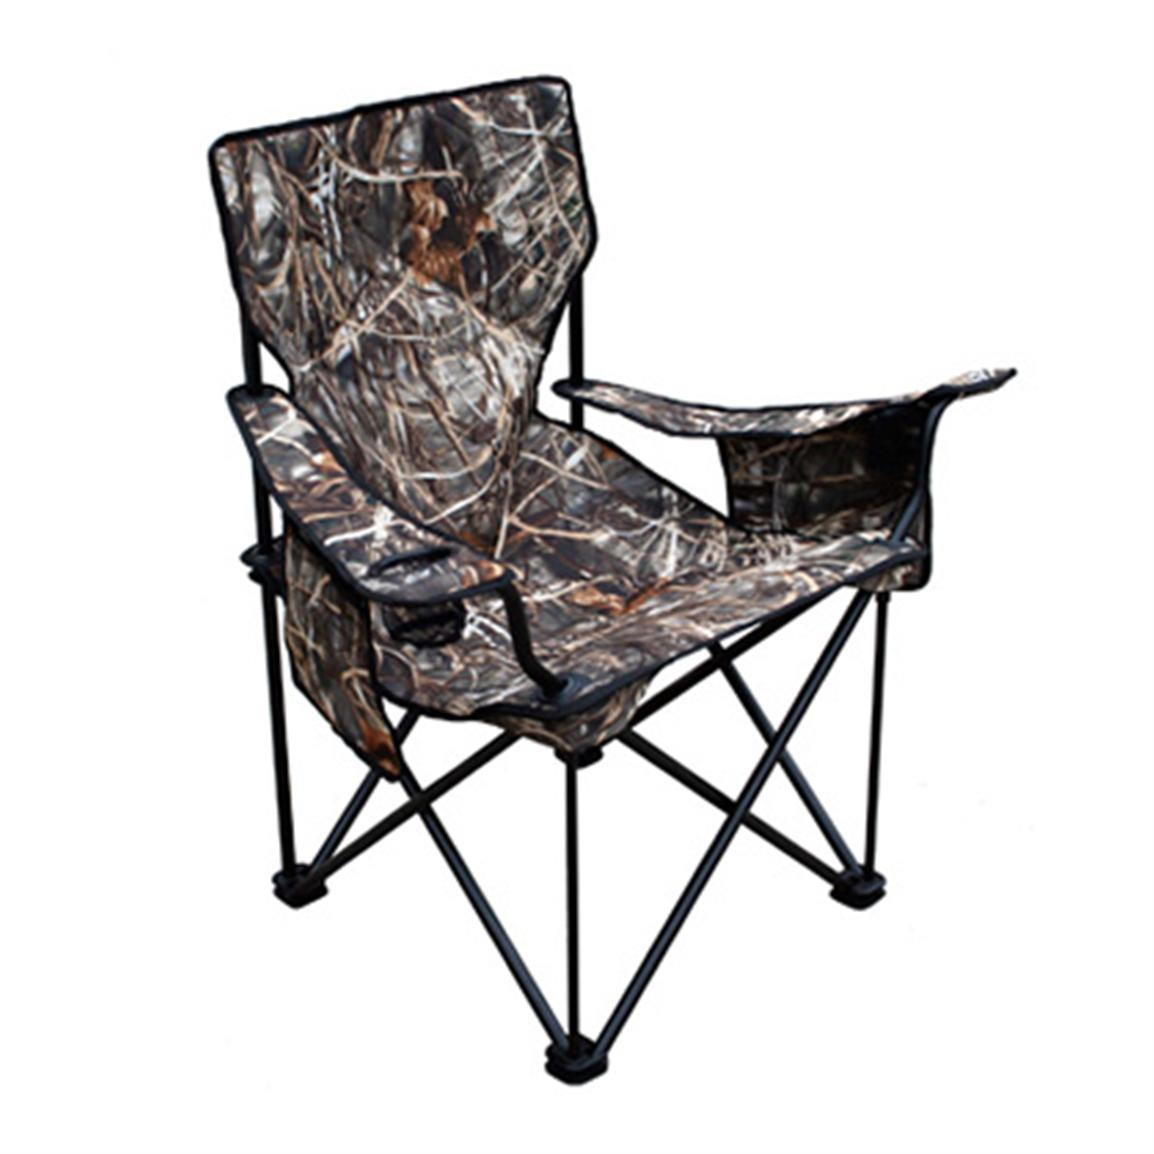 King Chairs Alps Mountaineering King Kong Mesh Chair 154539 Chairs